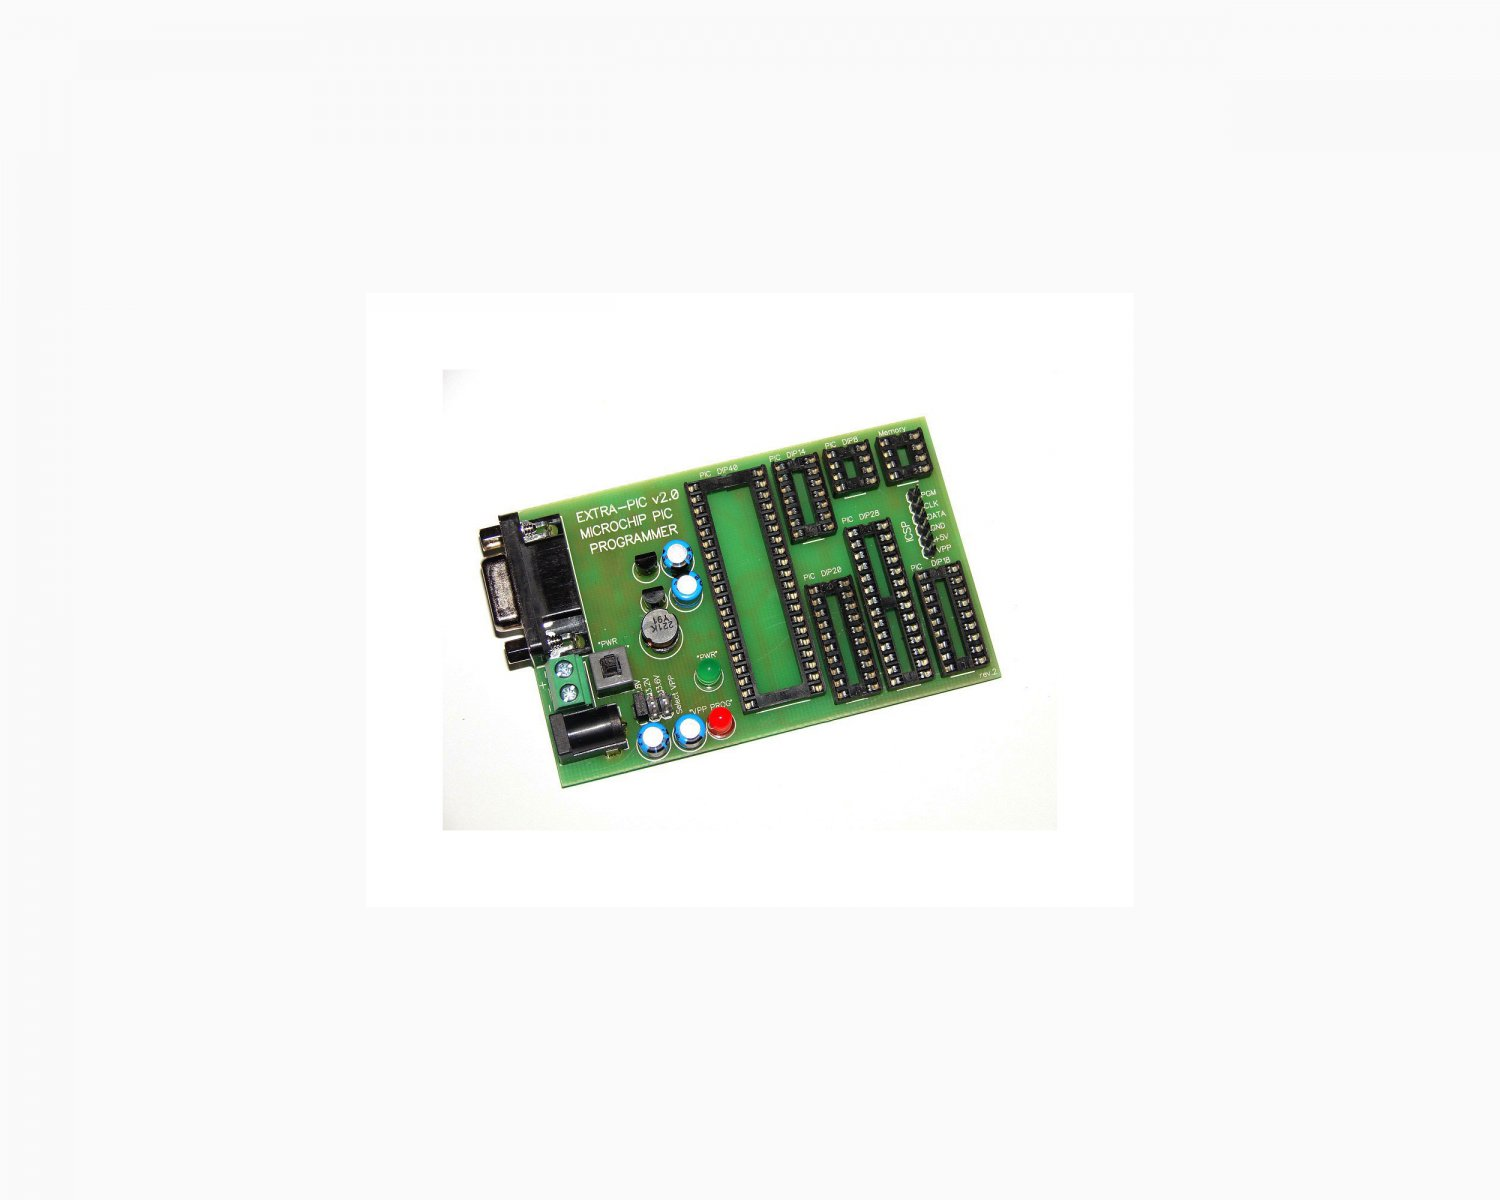 Microchip PIC Programmer EXTRA-PIC v2.0